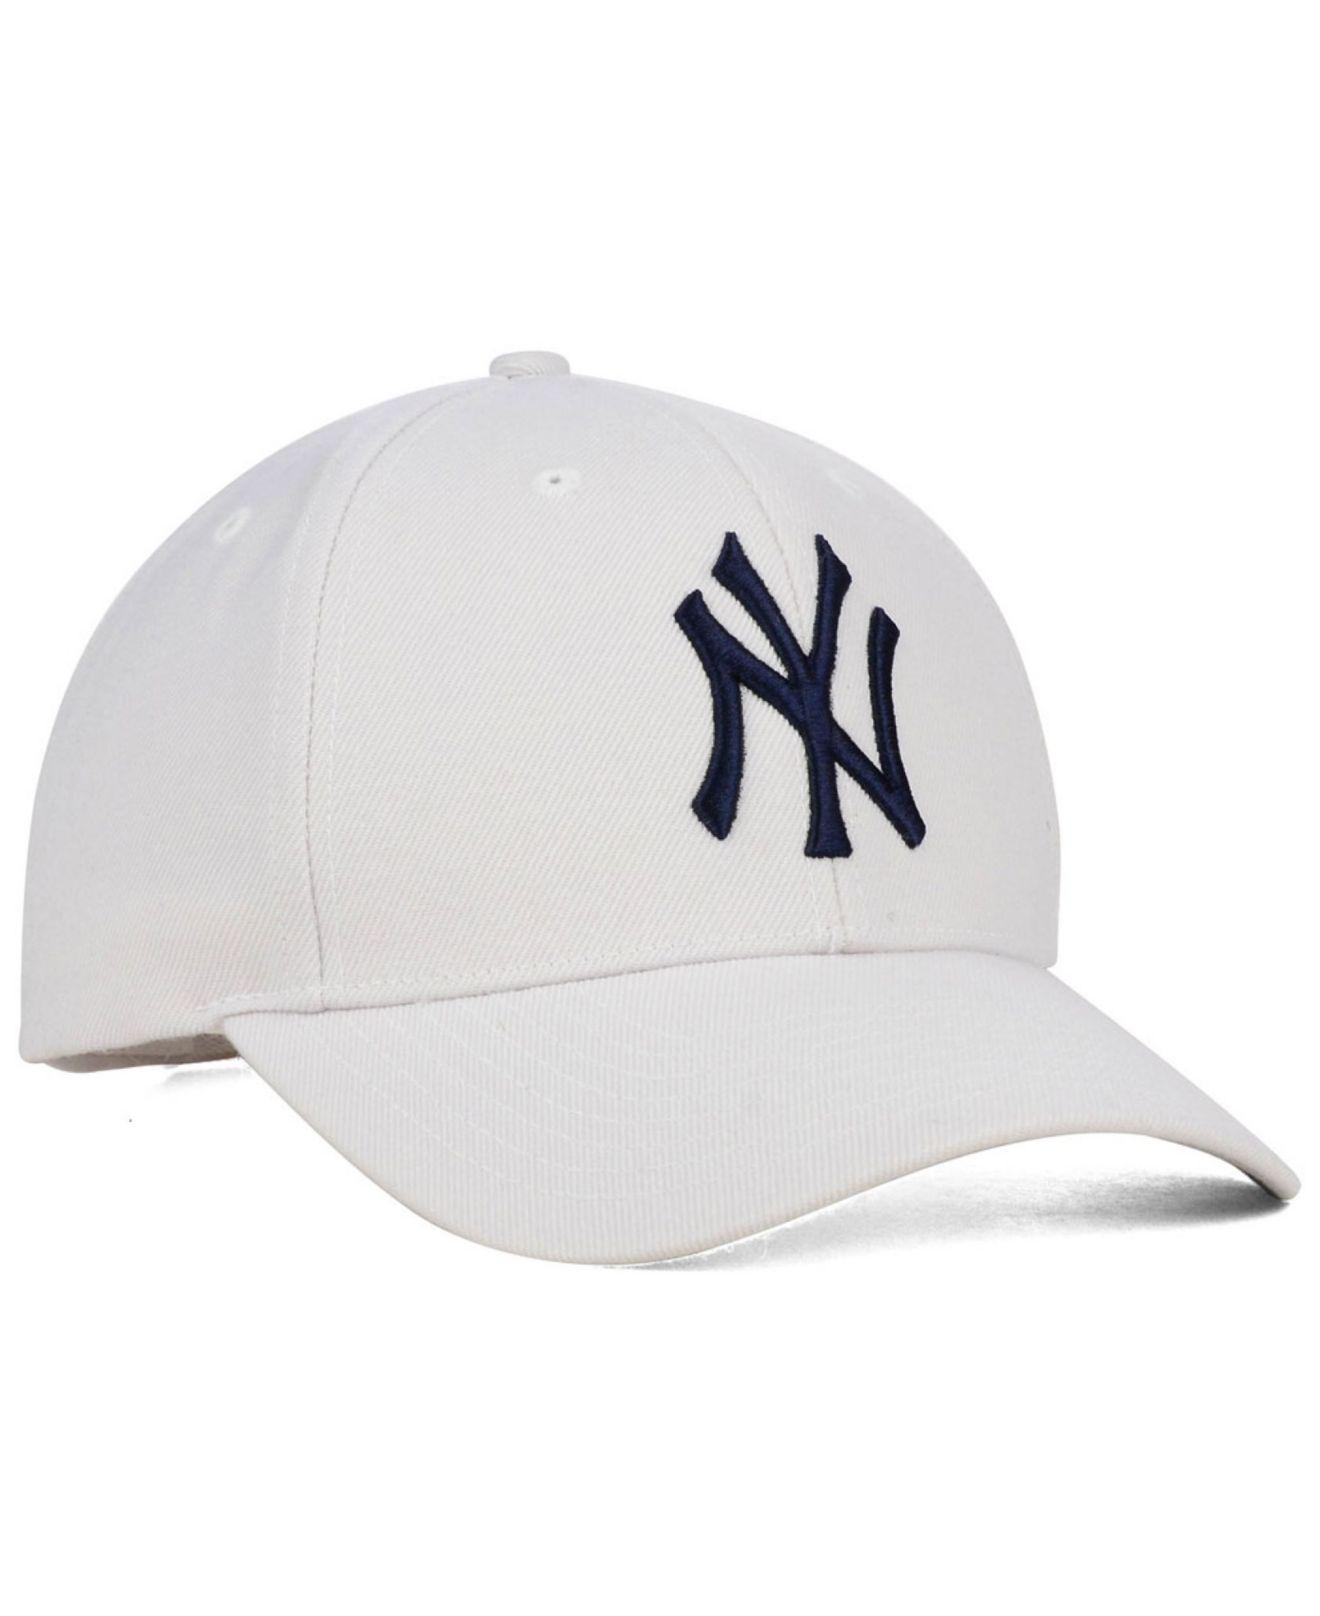 5489888e4ed19 ... sale new york yankees mvp curved cap for men lyst. view fullscreen  b4472 548d4